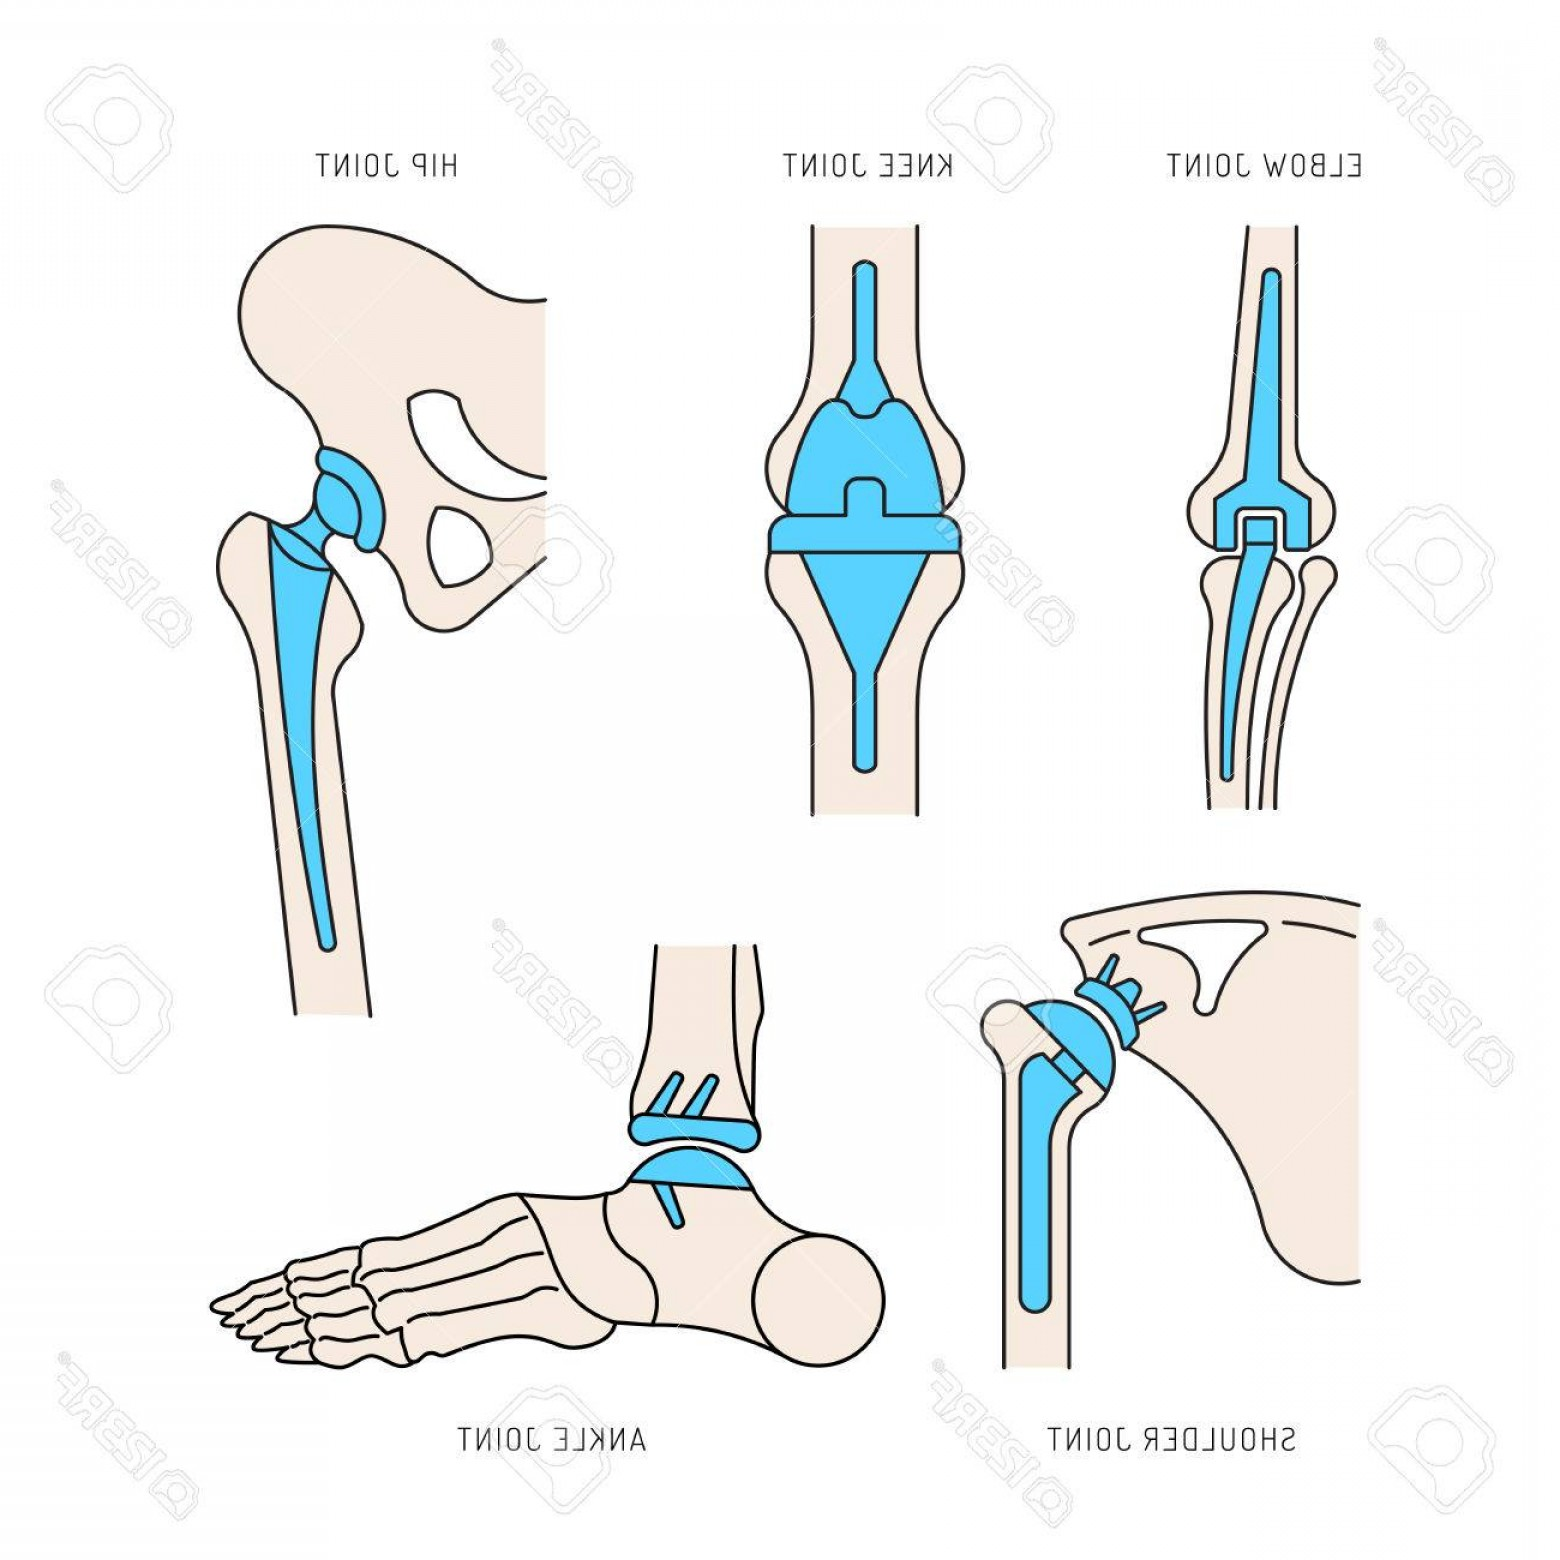 Line Art Human Body Skeleton Labeled Bones Of The Vector: Photostock Vector Medical Illustration Of The Implantation Of The Bone Joints In The Human Skeleton Layout Of Implants